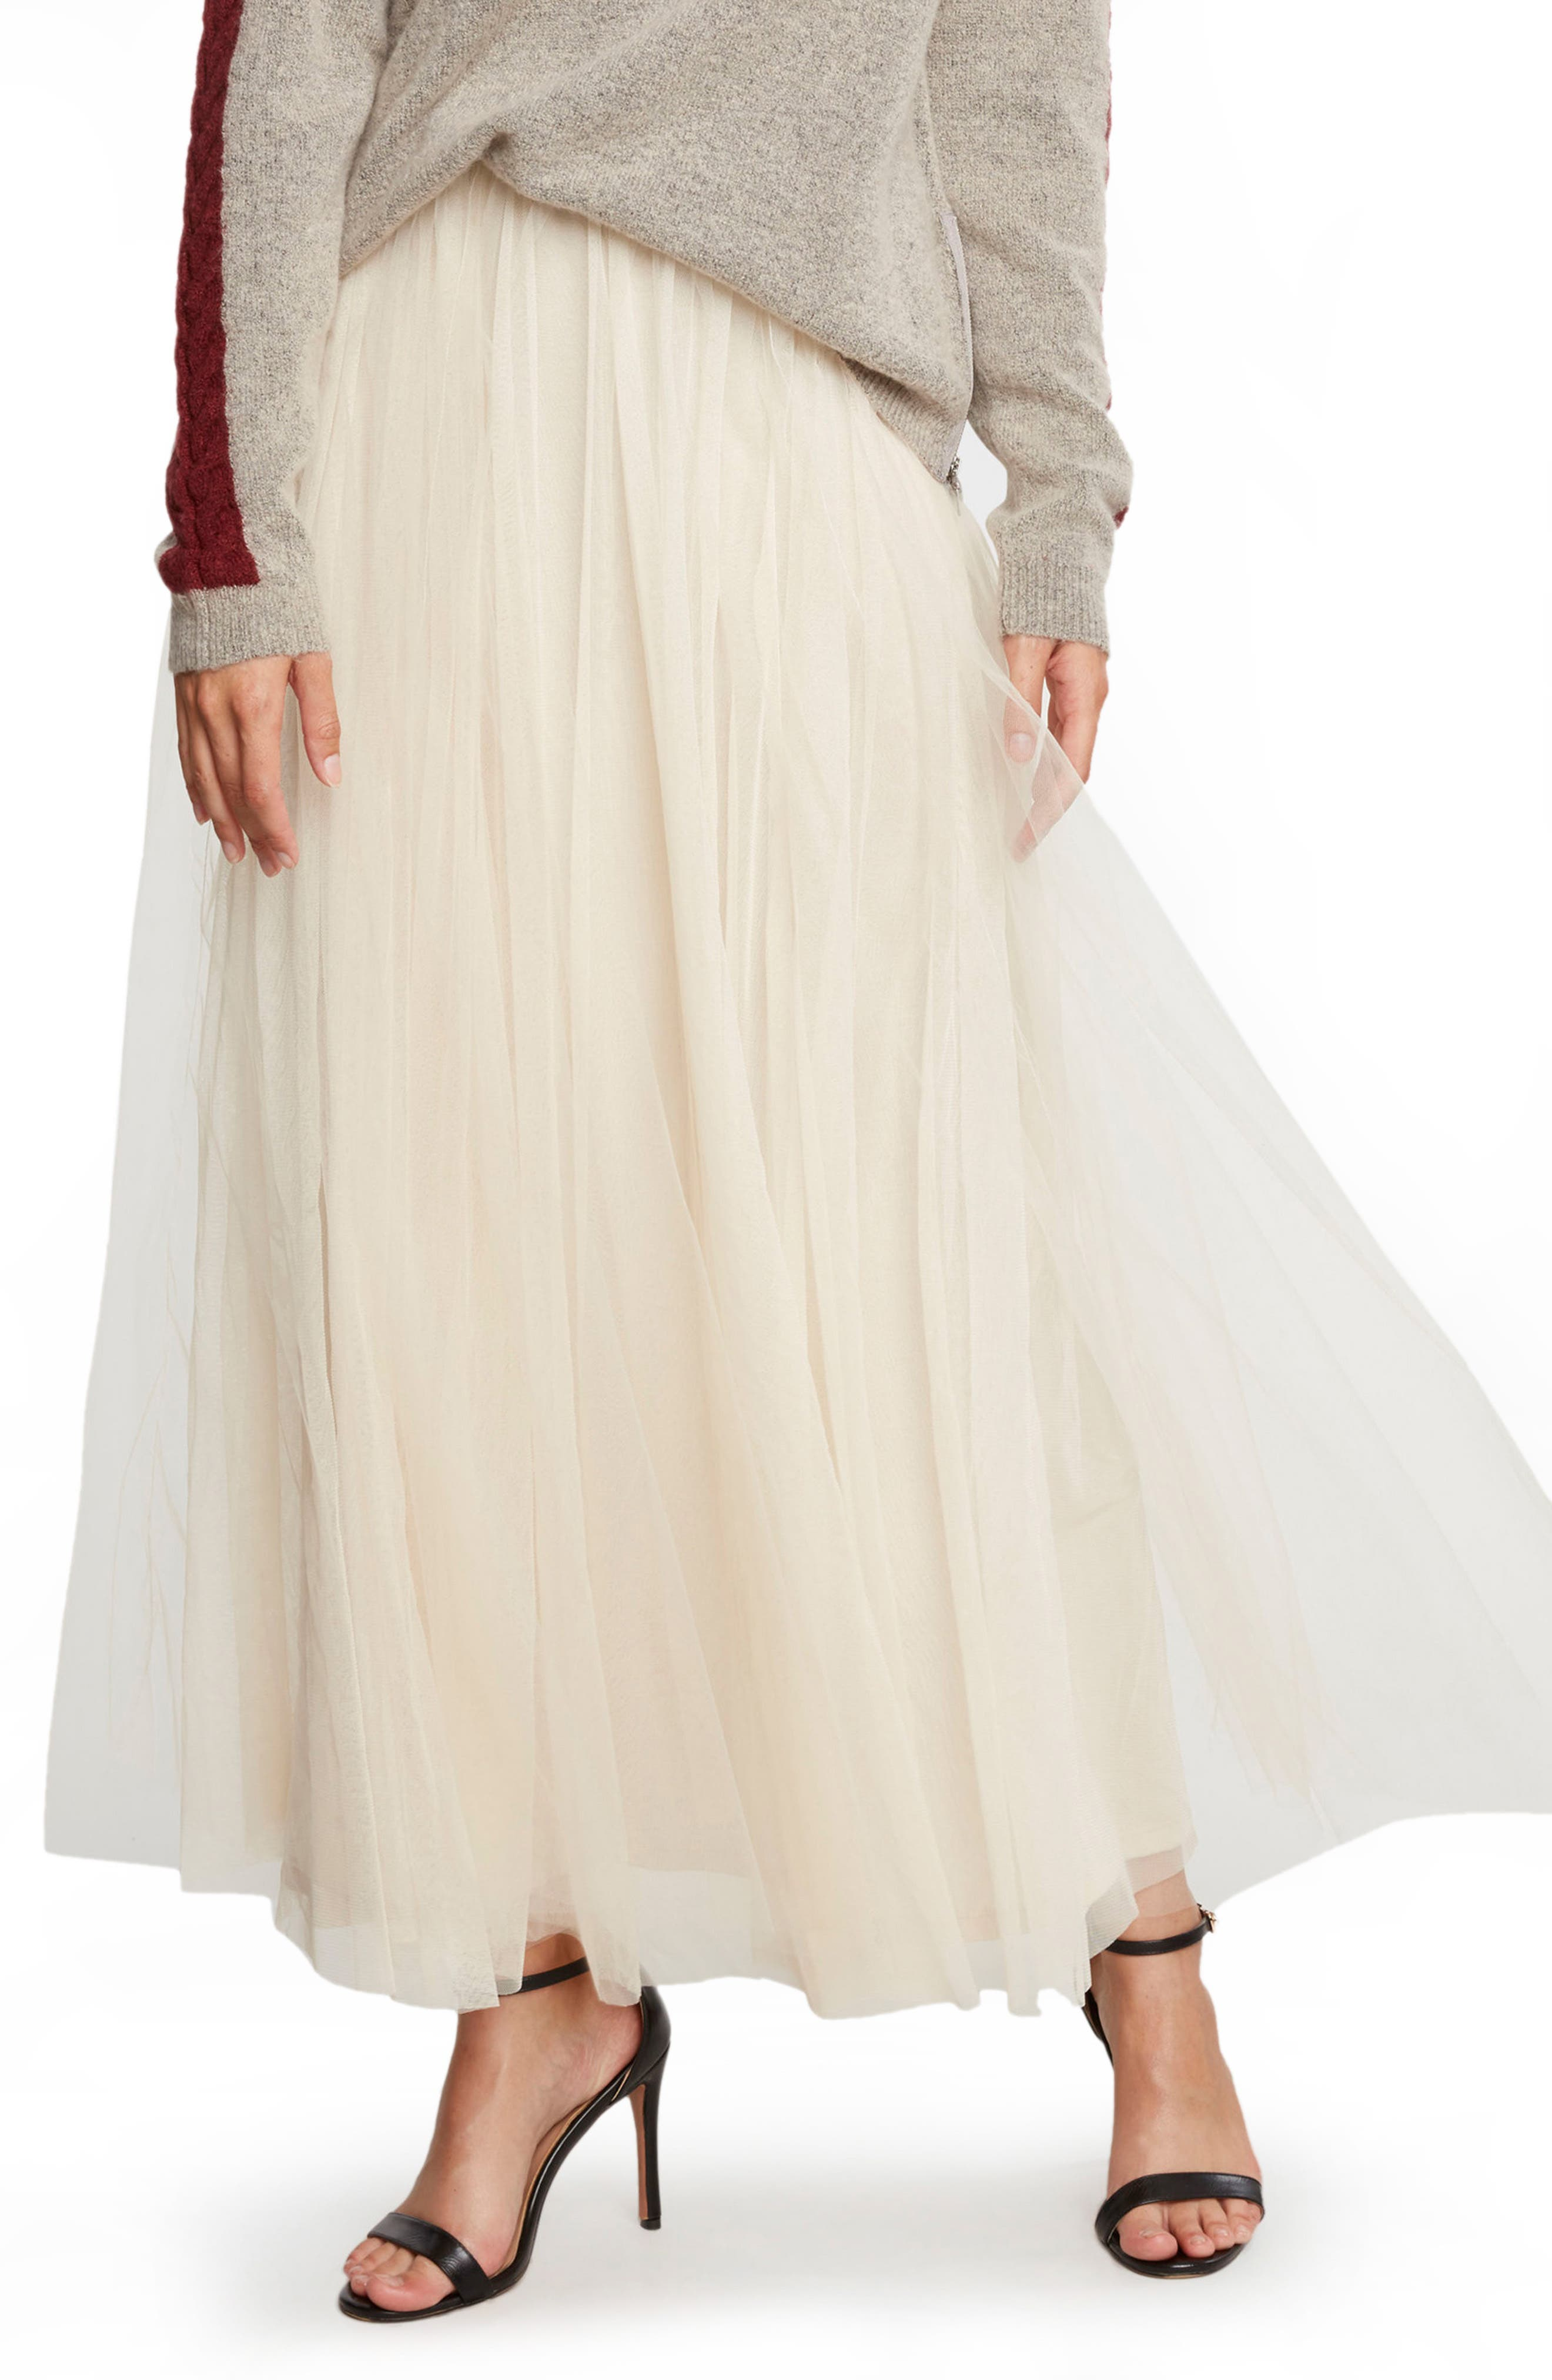 WILLOW & CLAY Tulle Midi Skirt, Main, color, 901